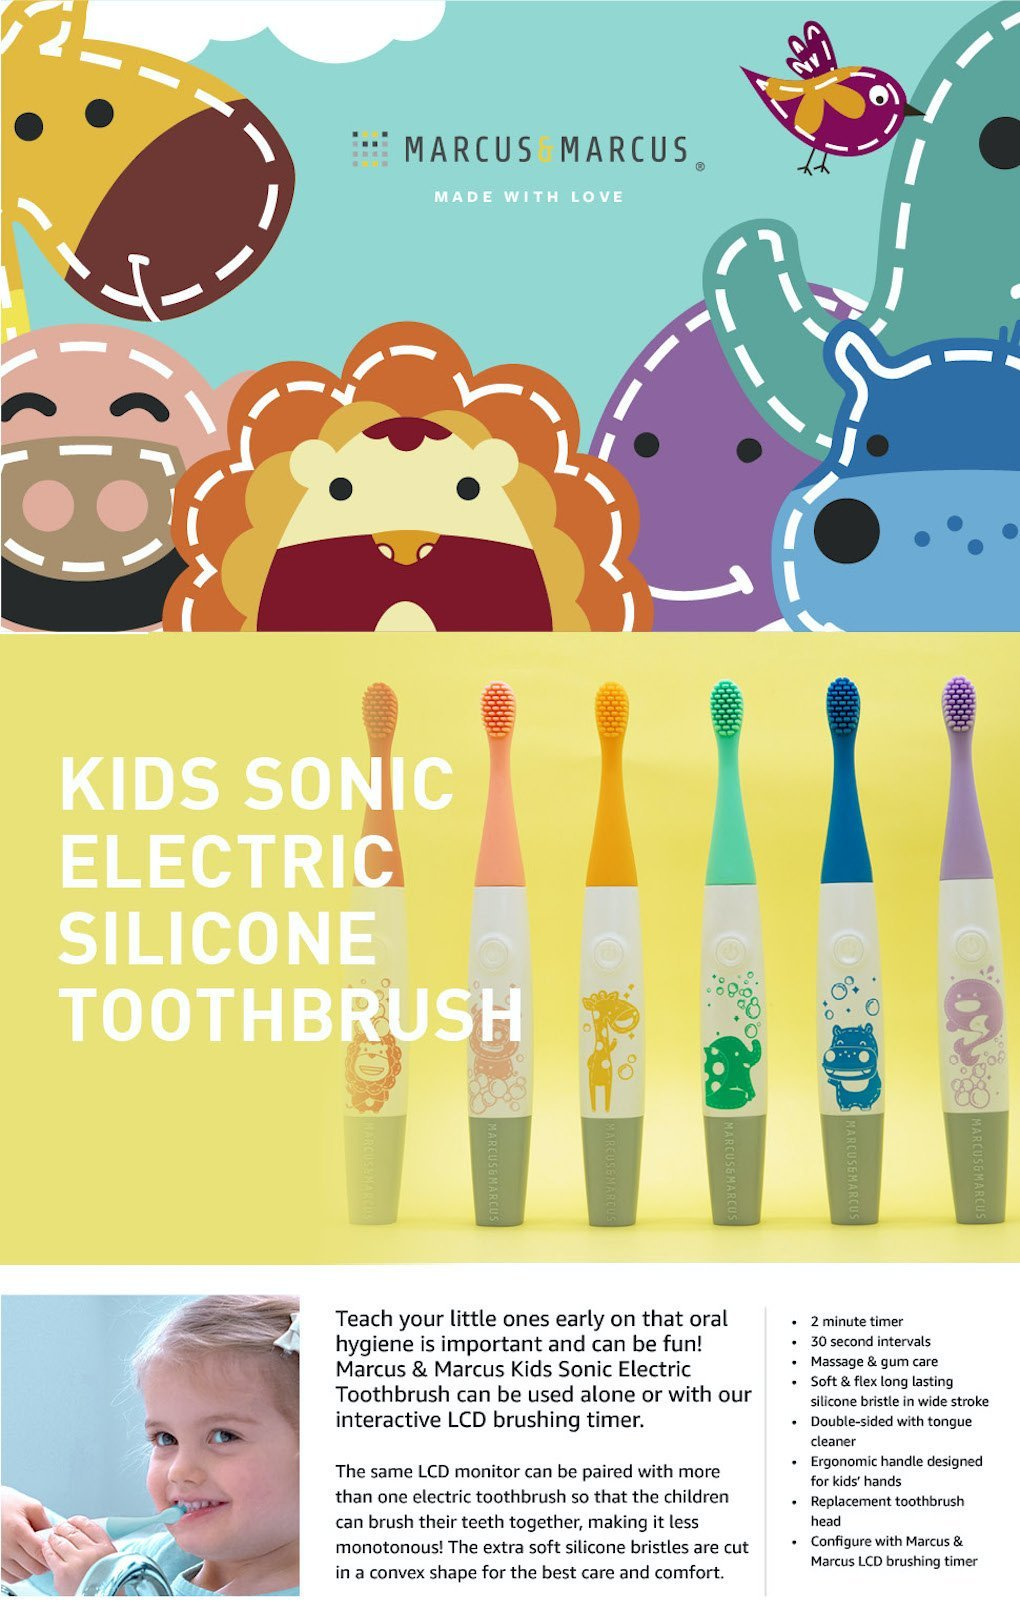 Kids Sonic Electric Silicone Toothbrush